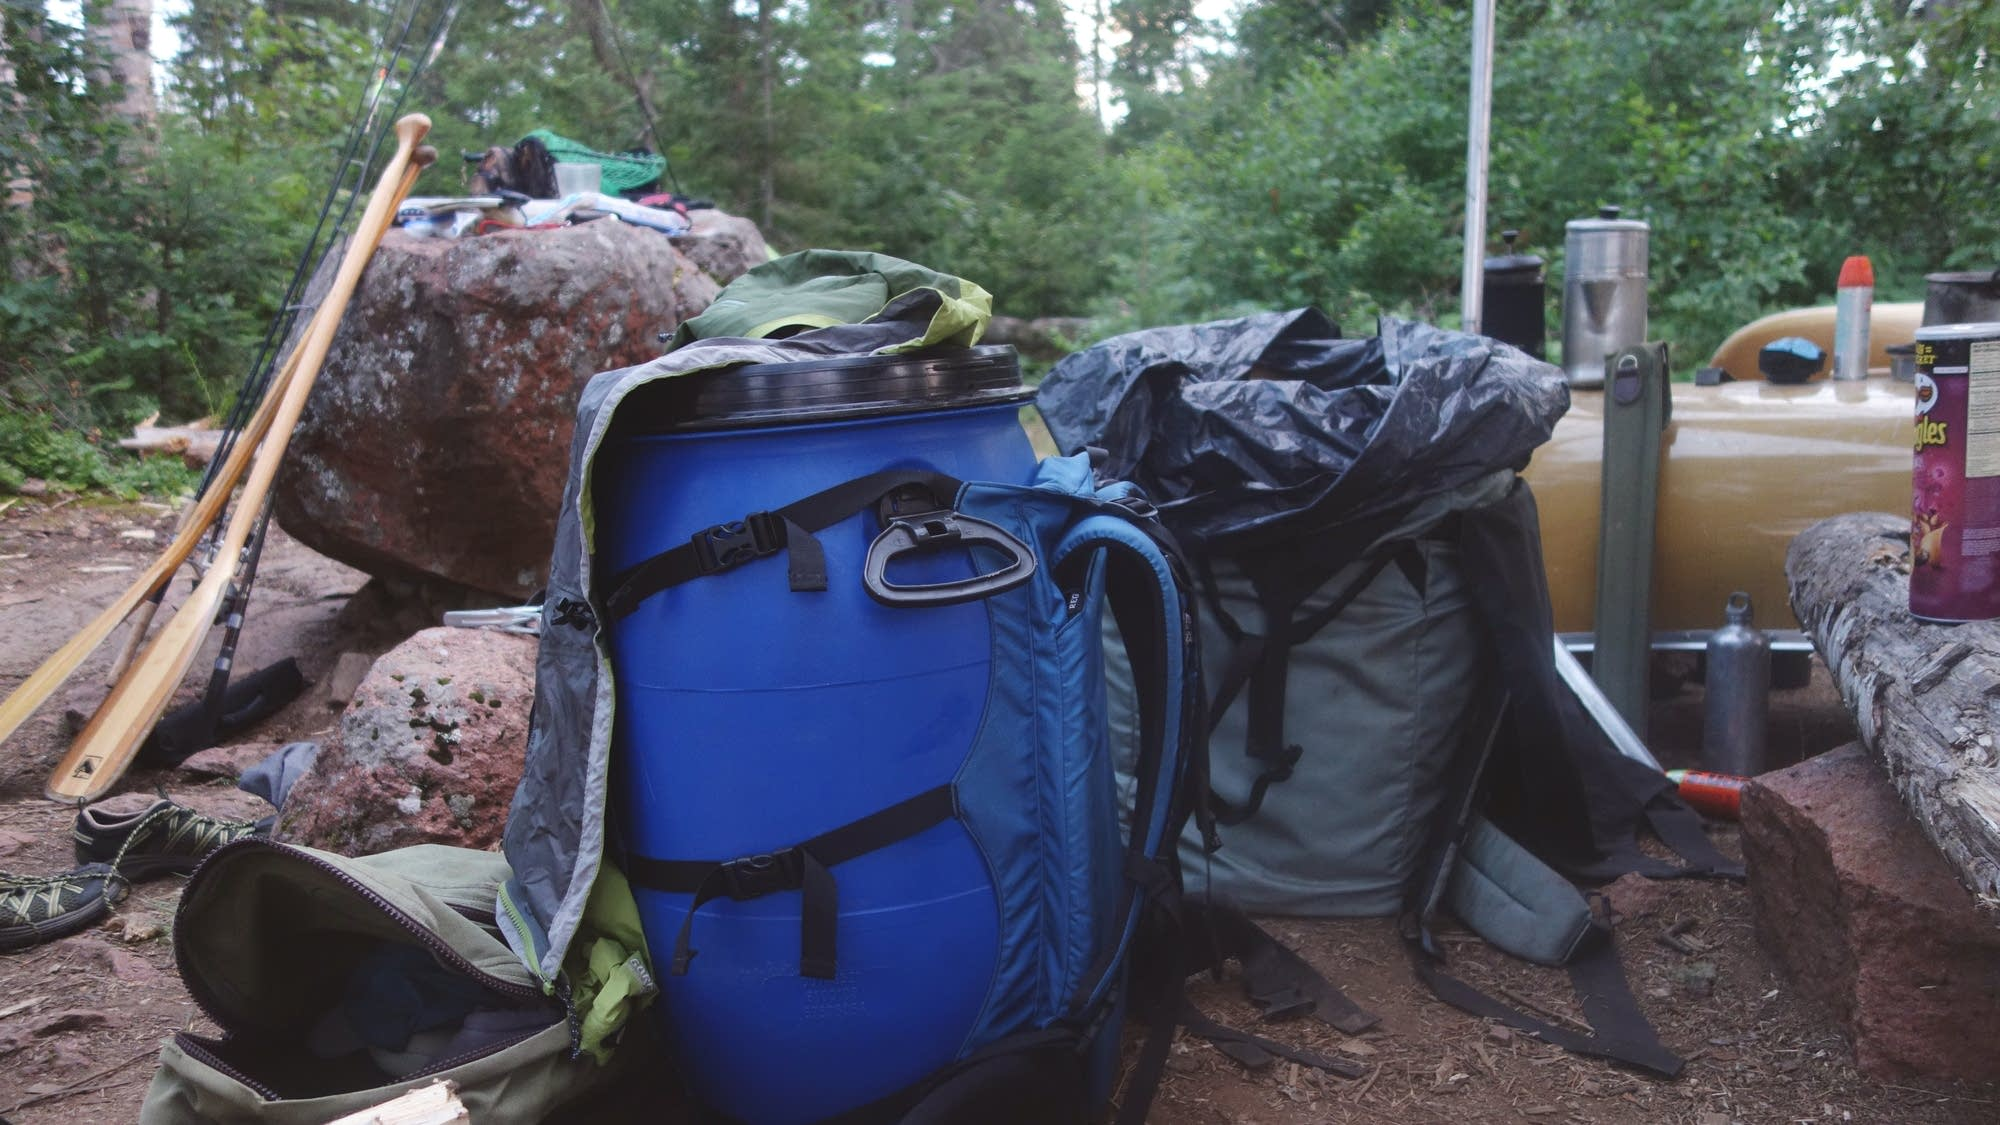 A bear-resistant container and portage pack